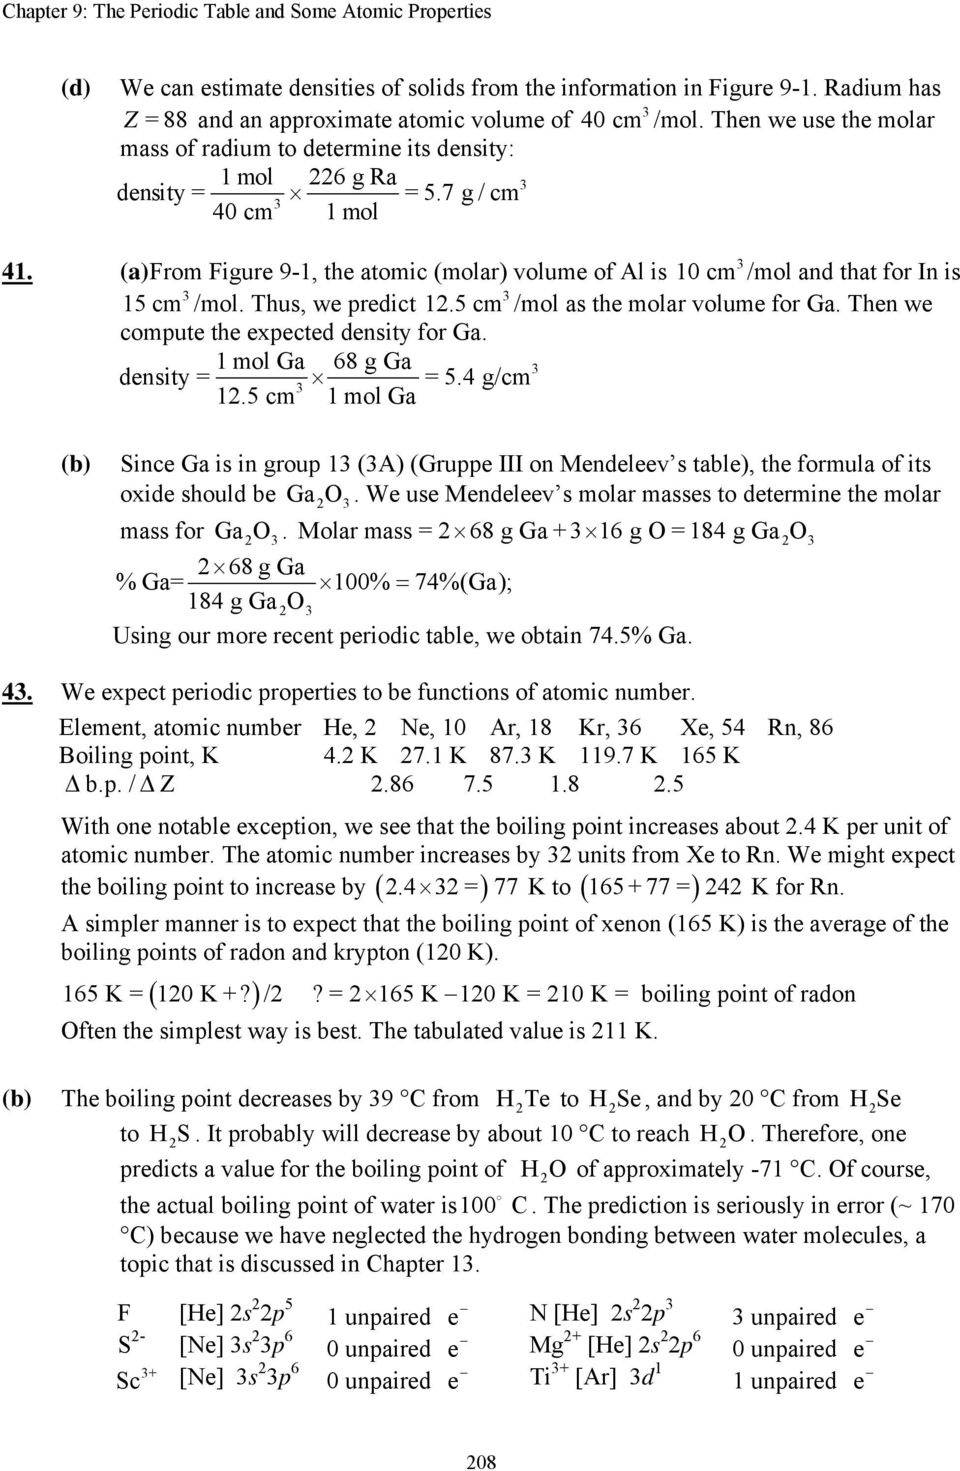 Chapter 9 The Periodic Table And Some Atomic Properties Pdf